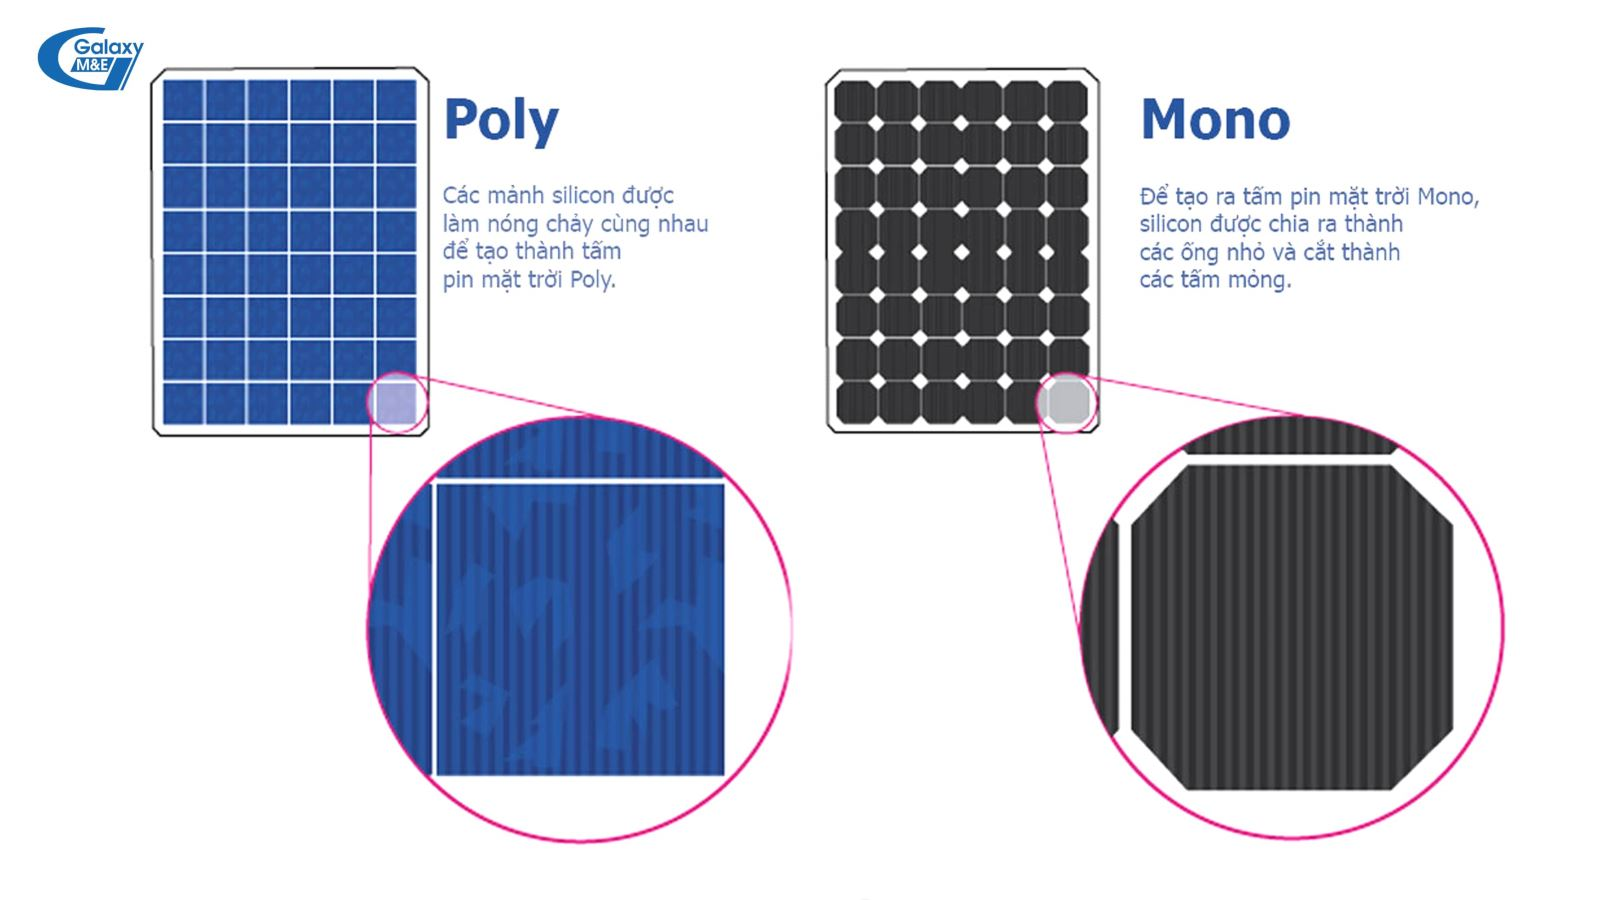 The capacity (Wp) of each solar panel differs depending on the technology, origin,  brand and manufacturer.